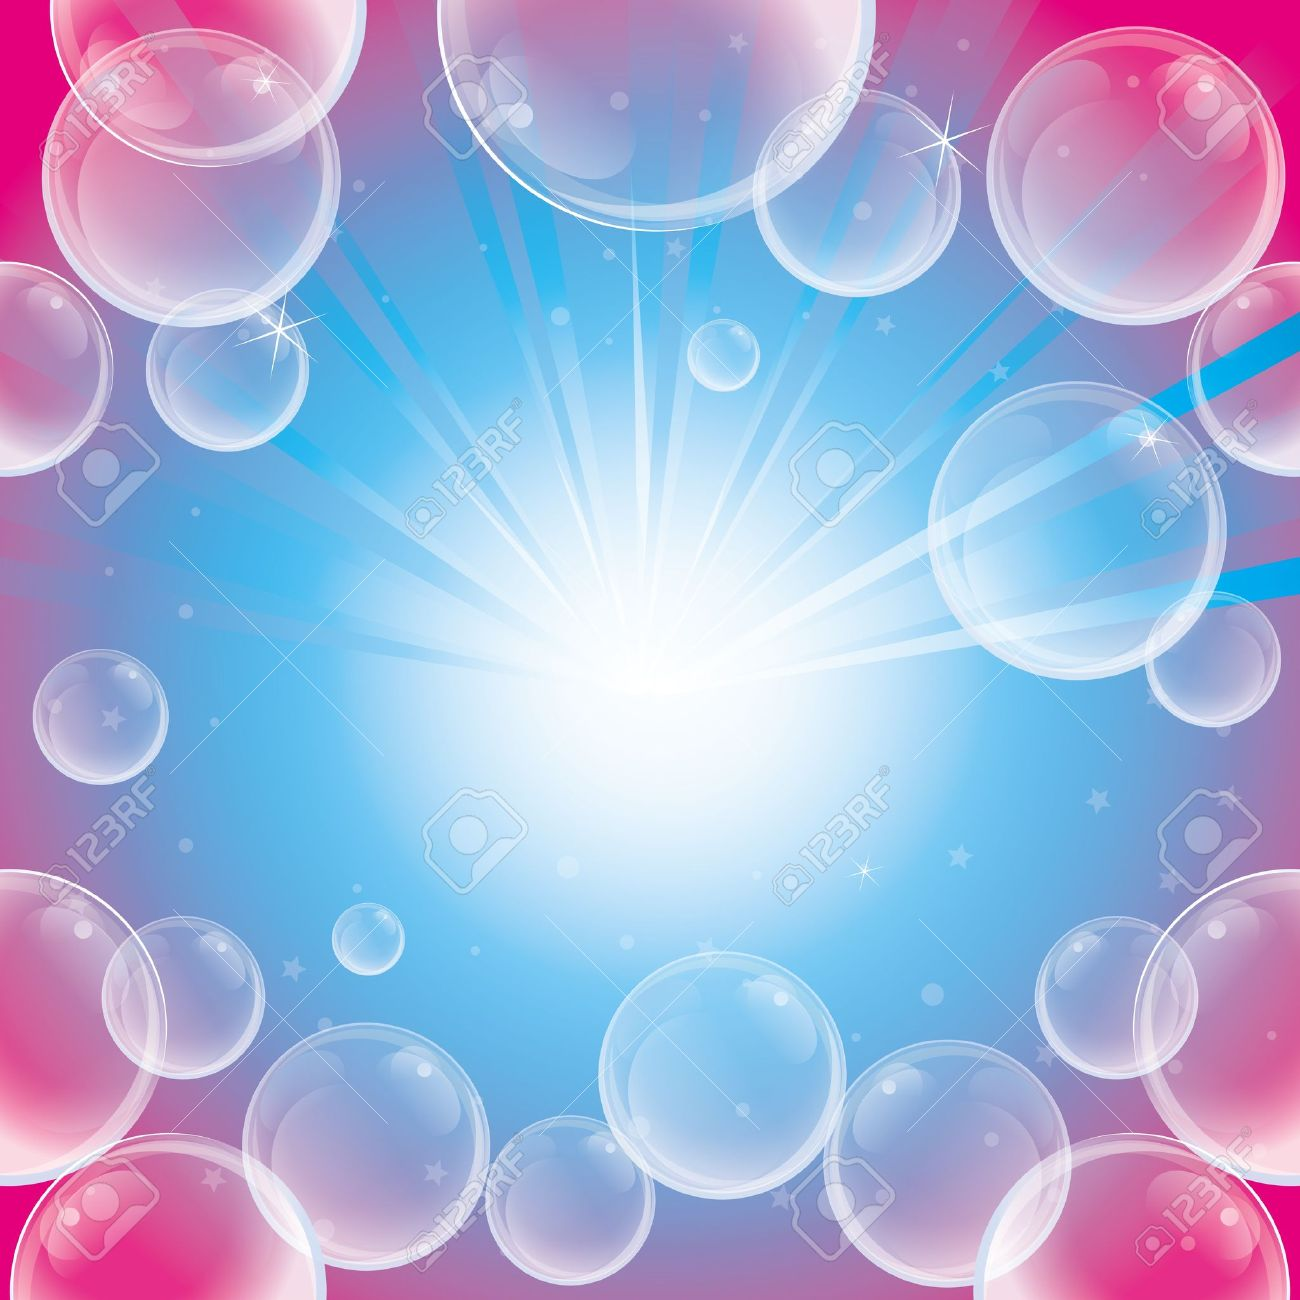 Soap bubble background download free vector art stock graphics - Absract Background With Soap Bubbles Vector Illustration Stock Vector 18021920